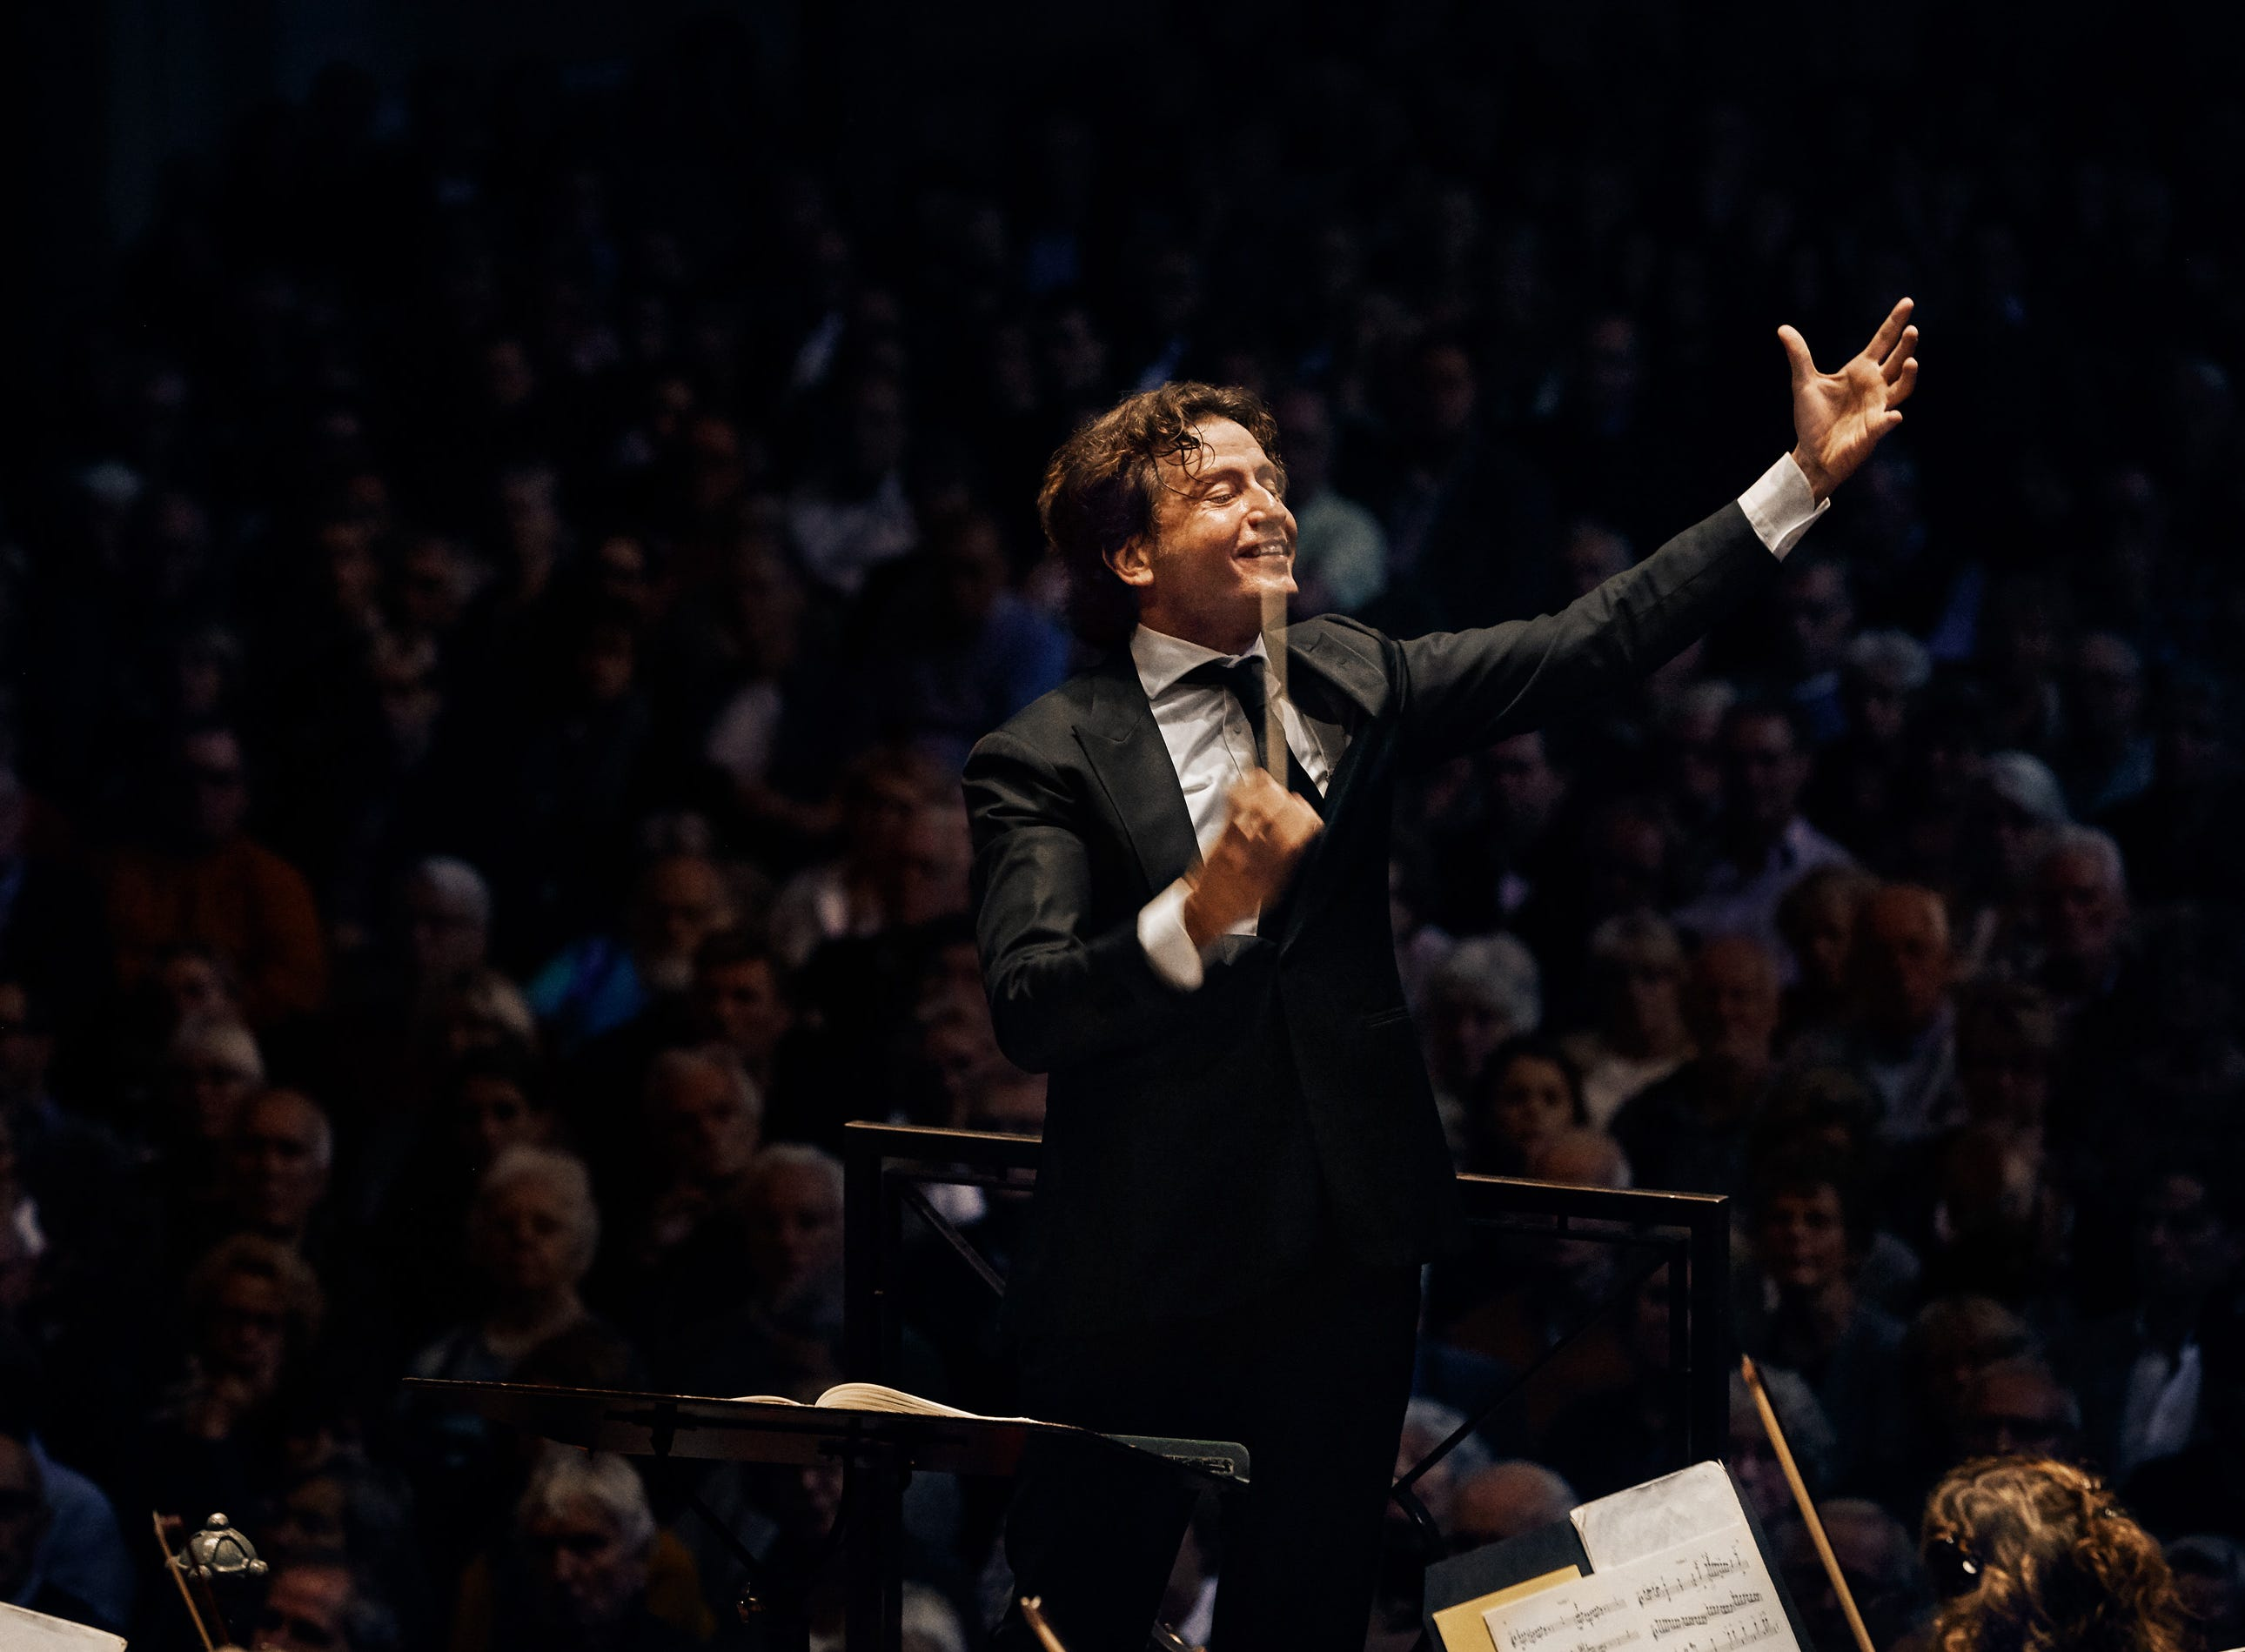 """Spanish conductor Gustavo Gimeno makes his CSO debut Oct. 25-26 in a program that includes de Falla's """"Nights in the Gardens of Spain,"""" featuring pianist Ingrid Fliter."""